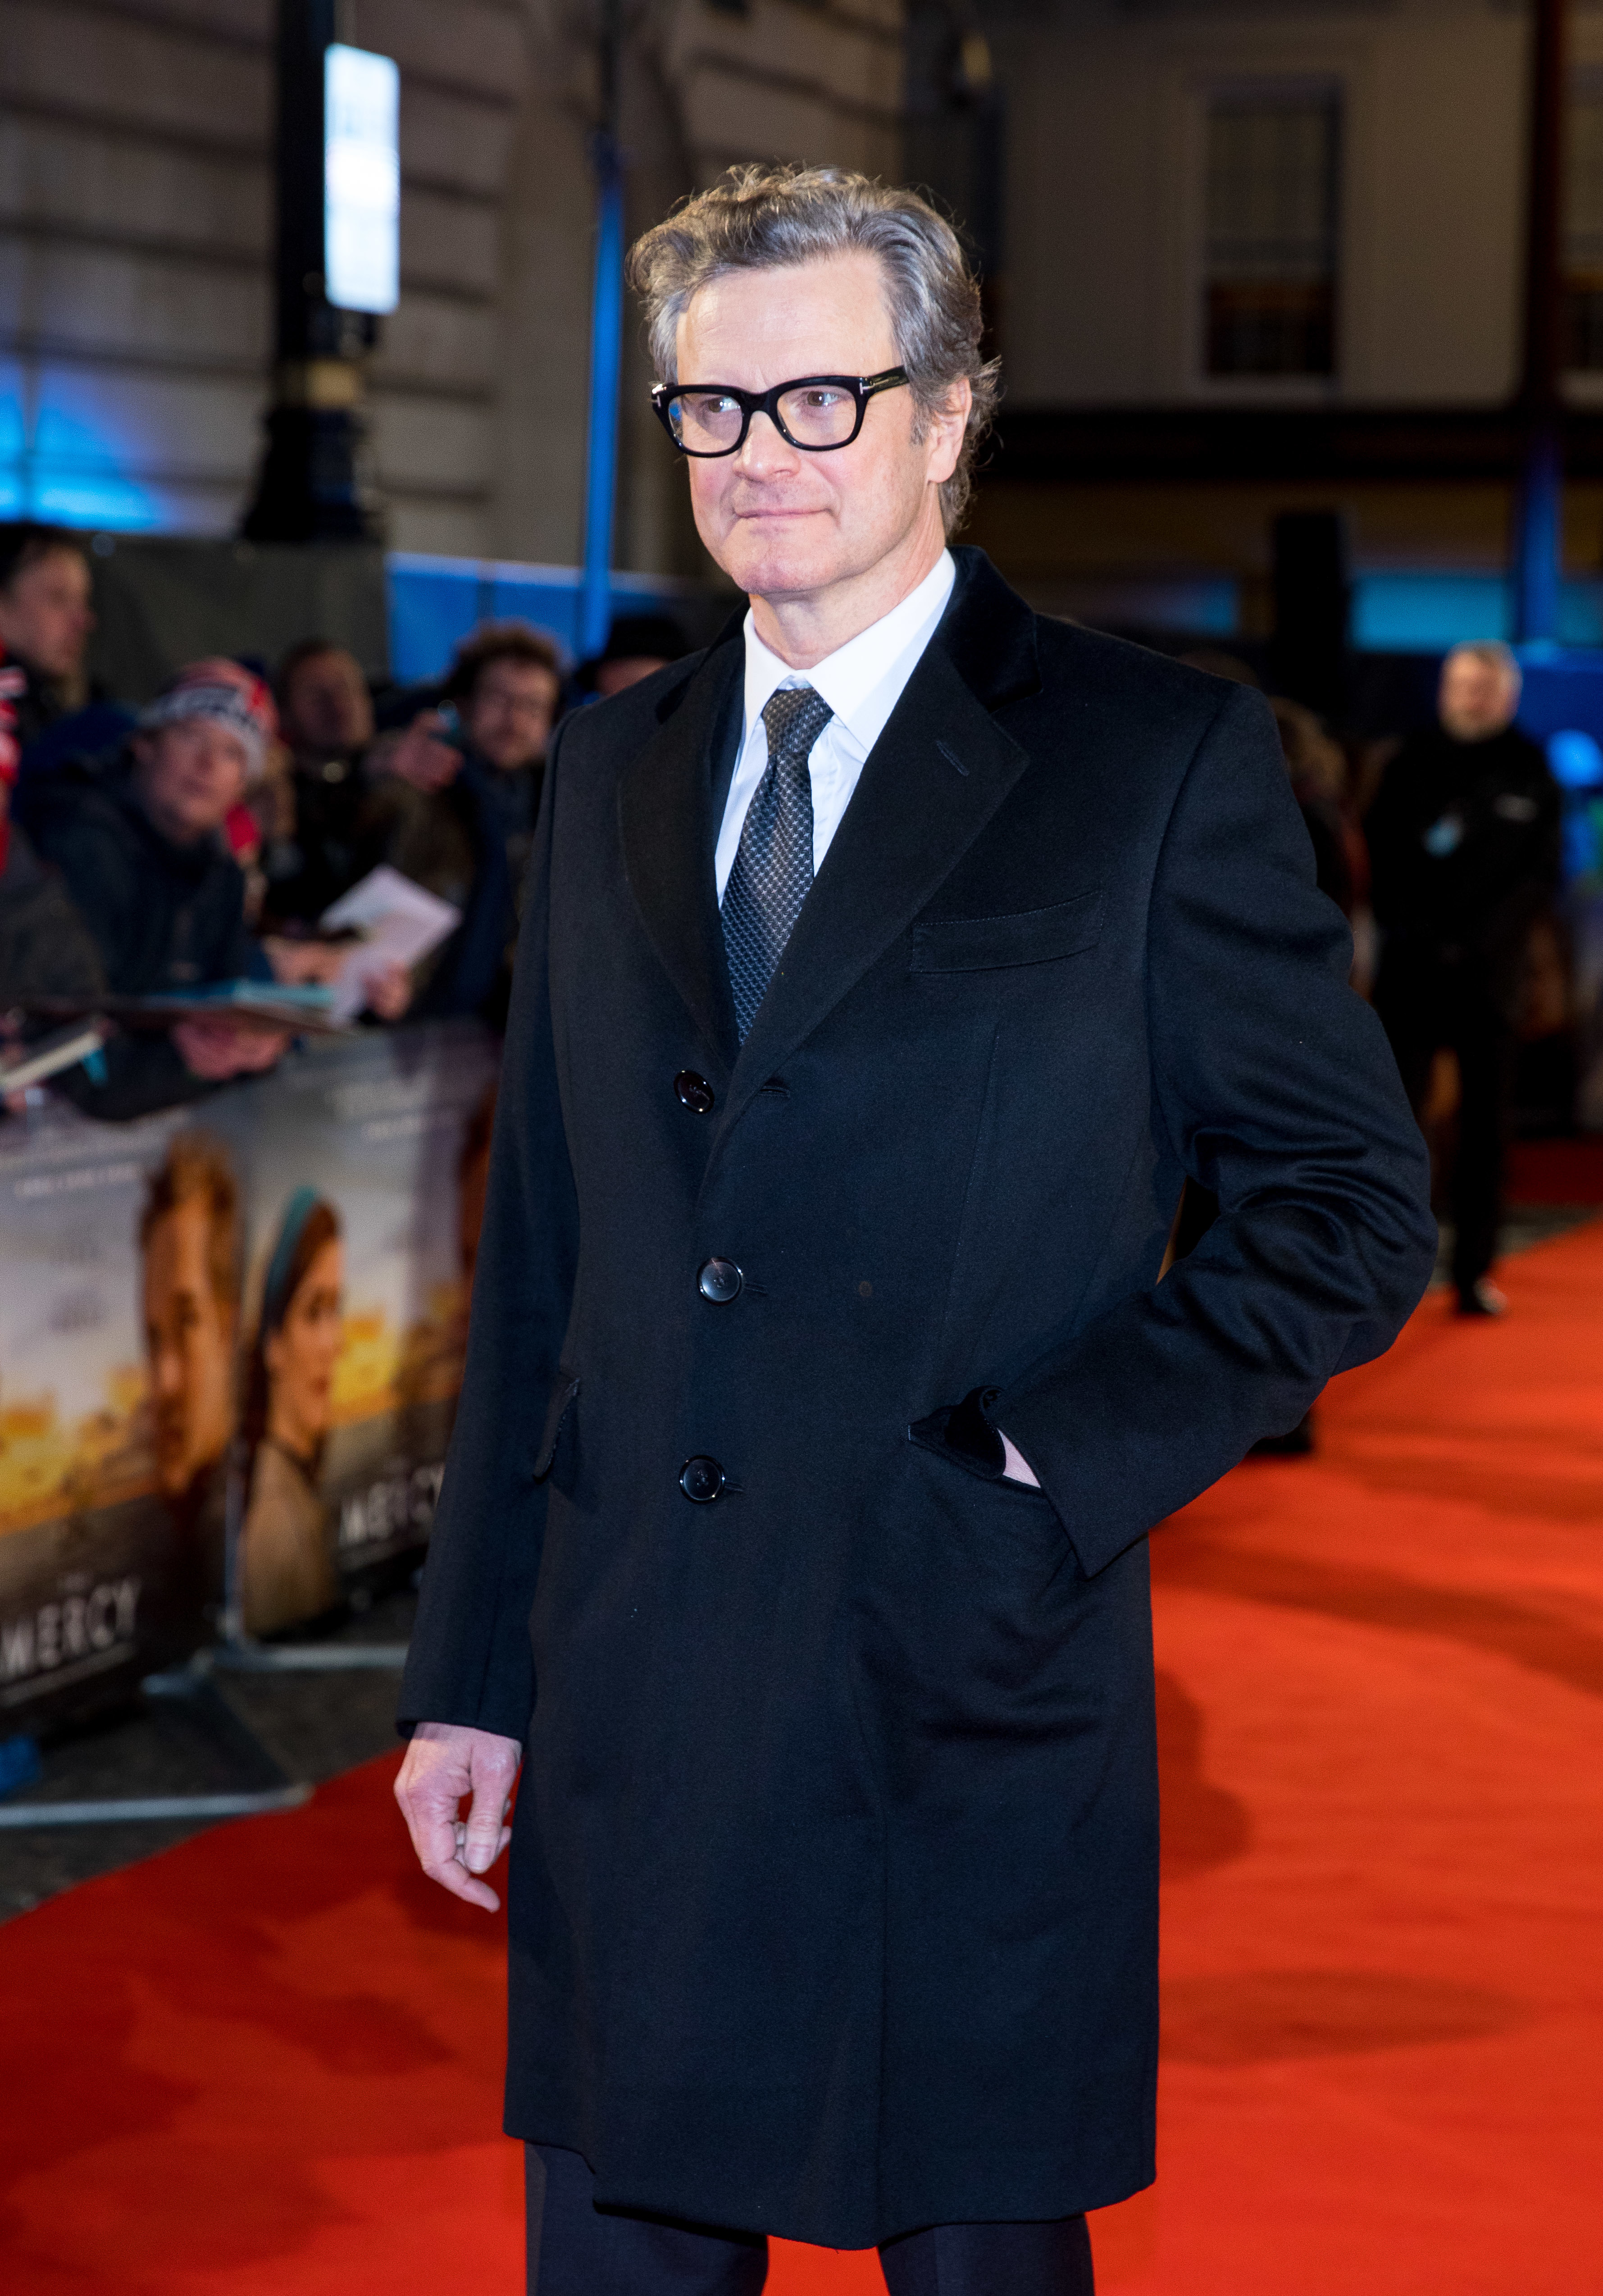 """Colin Firth attends the """"Mercy"""" premiere in London on Feb. 6, 2018 ."""